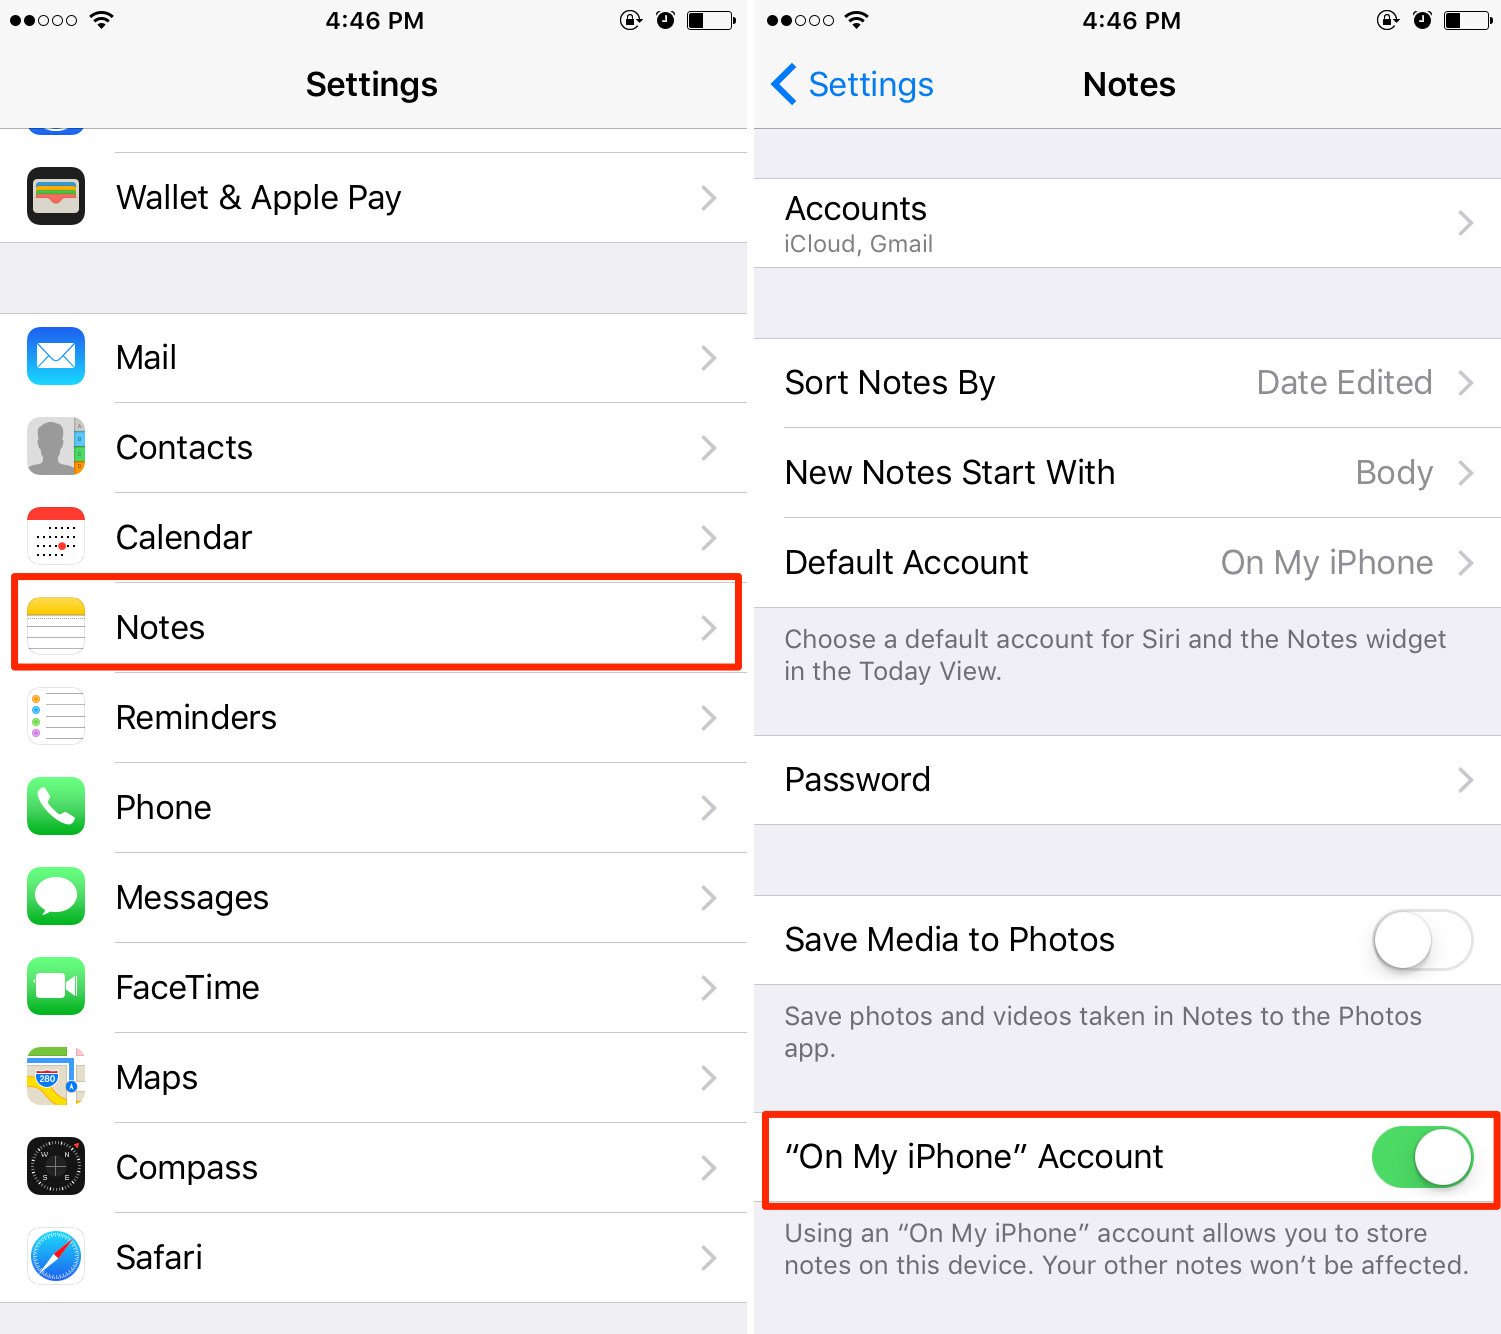 How to Add Photos to iTunes For Synching to iPhone or iPod All my photos disappeared from iphone